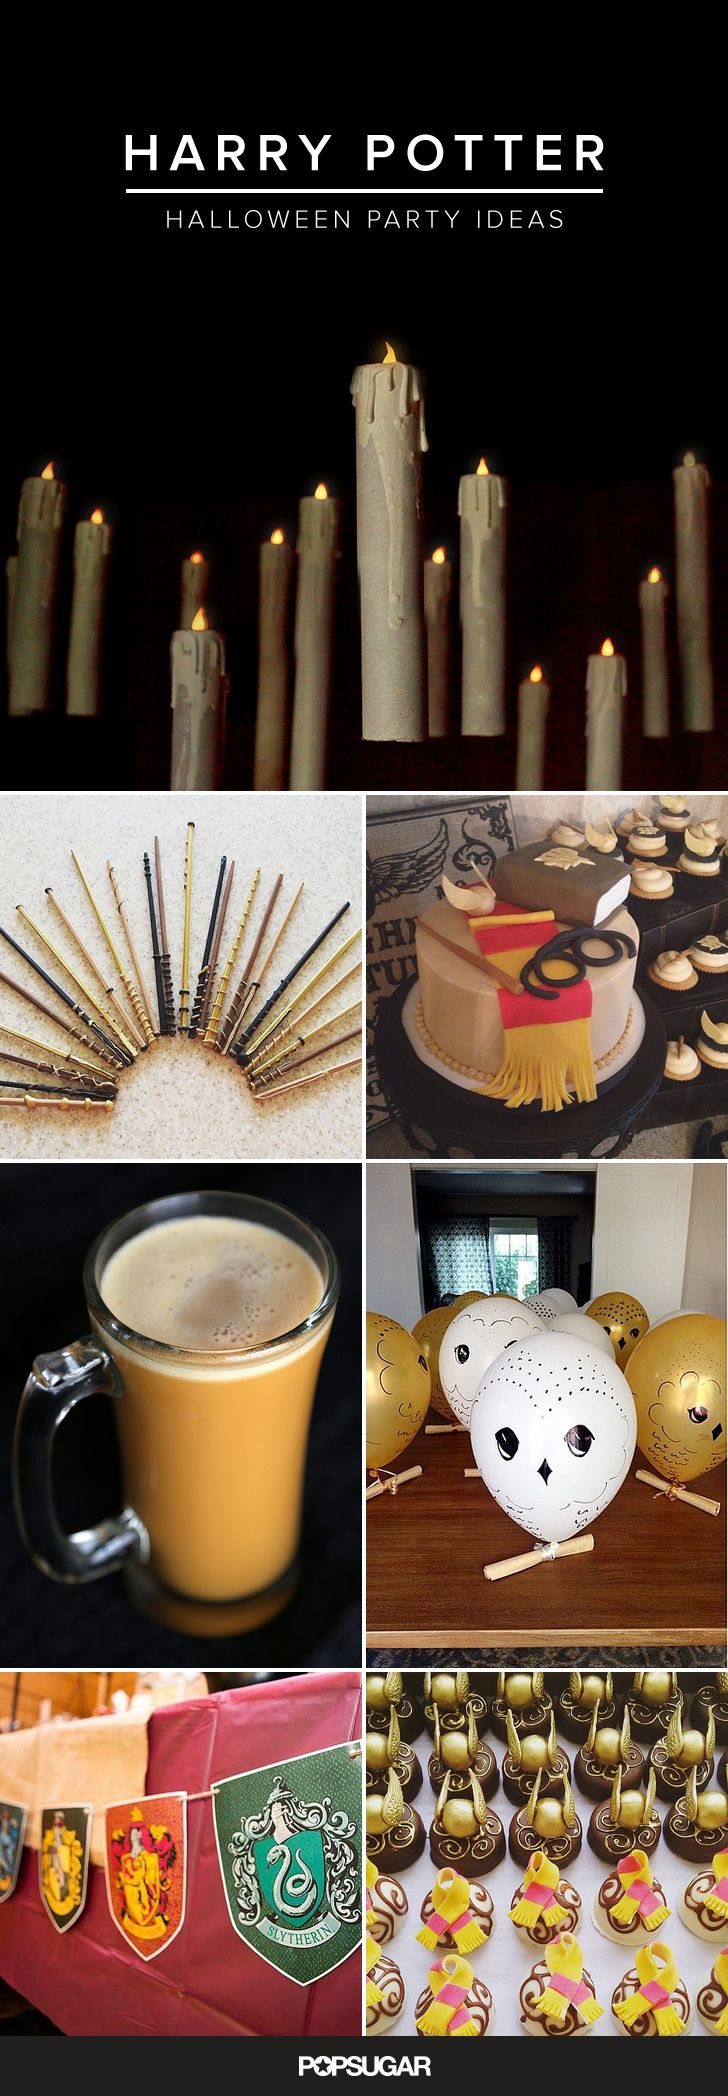 Everything You Need For a Magical Harry Potter Halloween Party ...